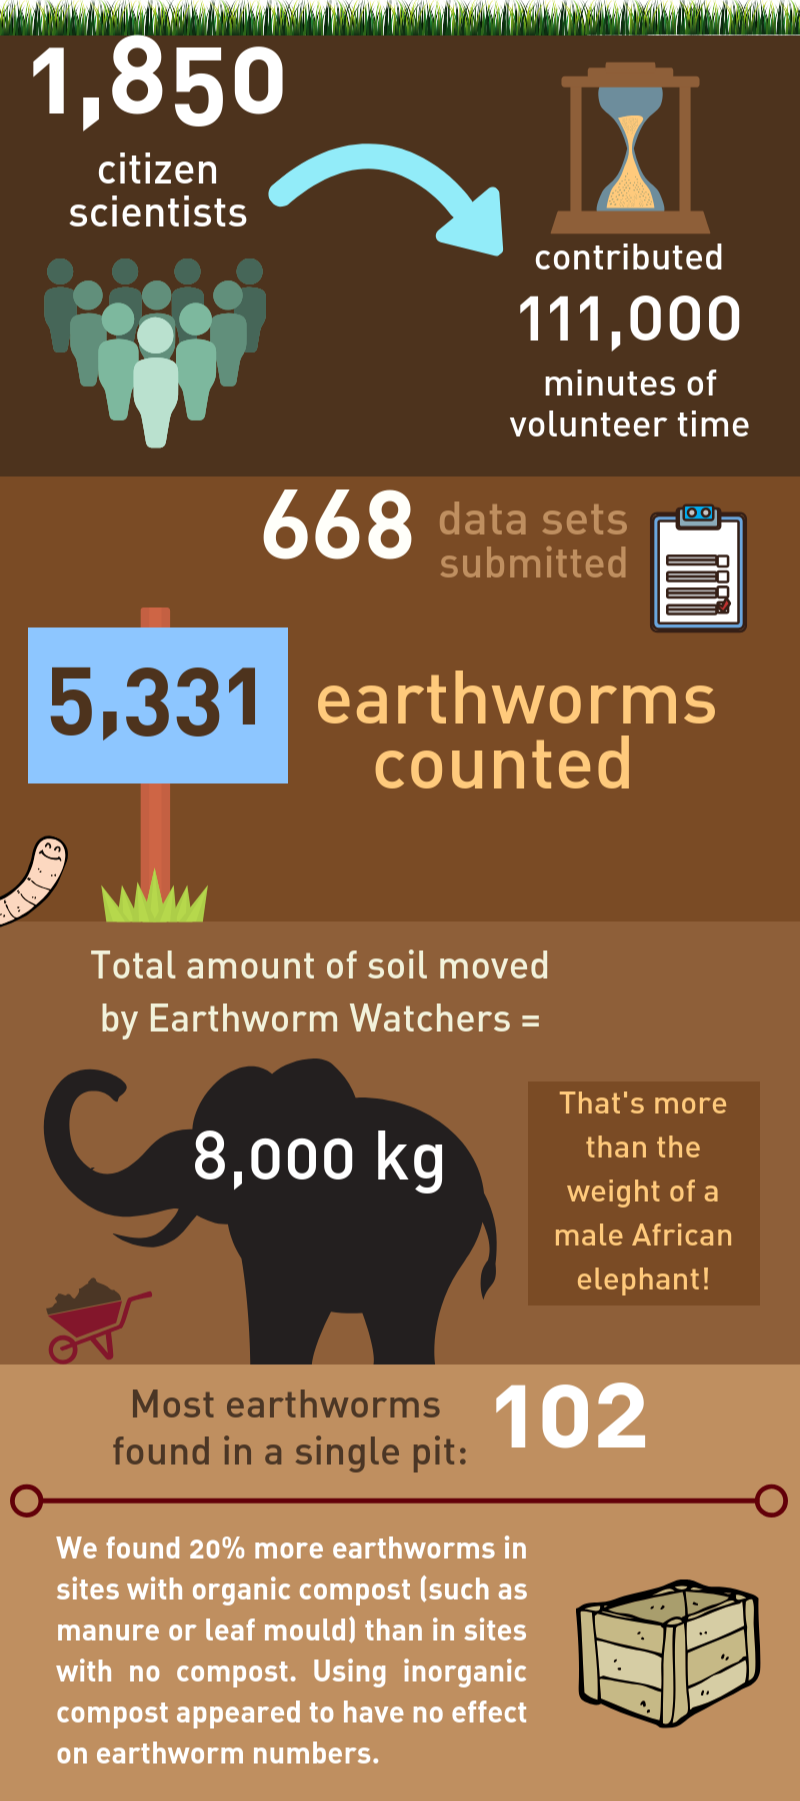 Earthworm Watch infographic